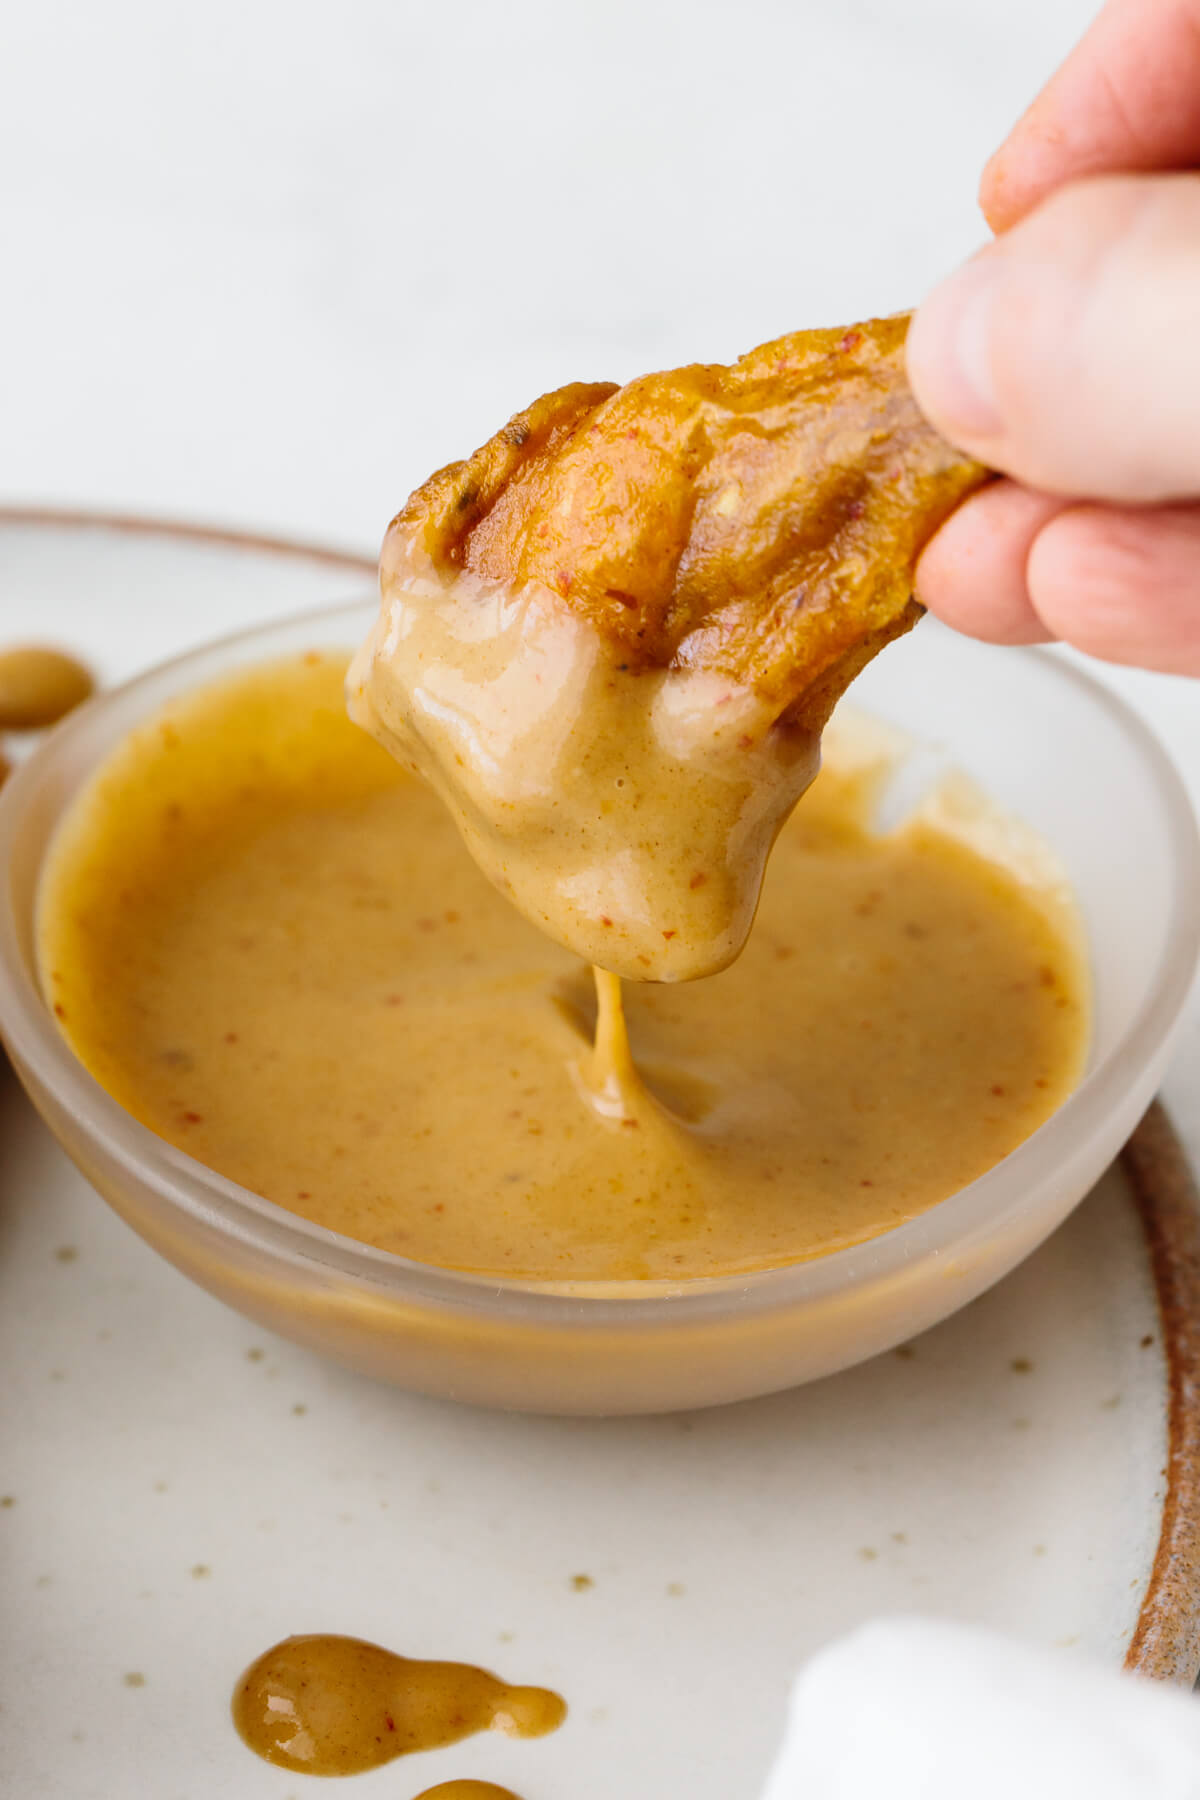 Honey mustard chicken wing dipping into honey mustard sauce.